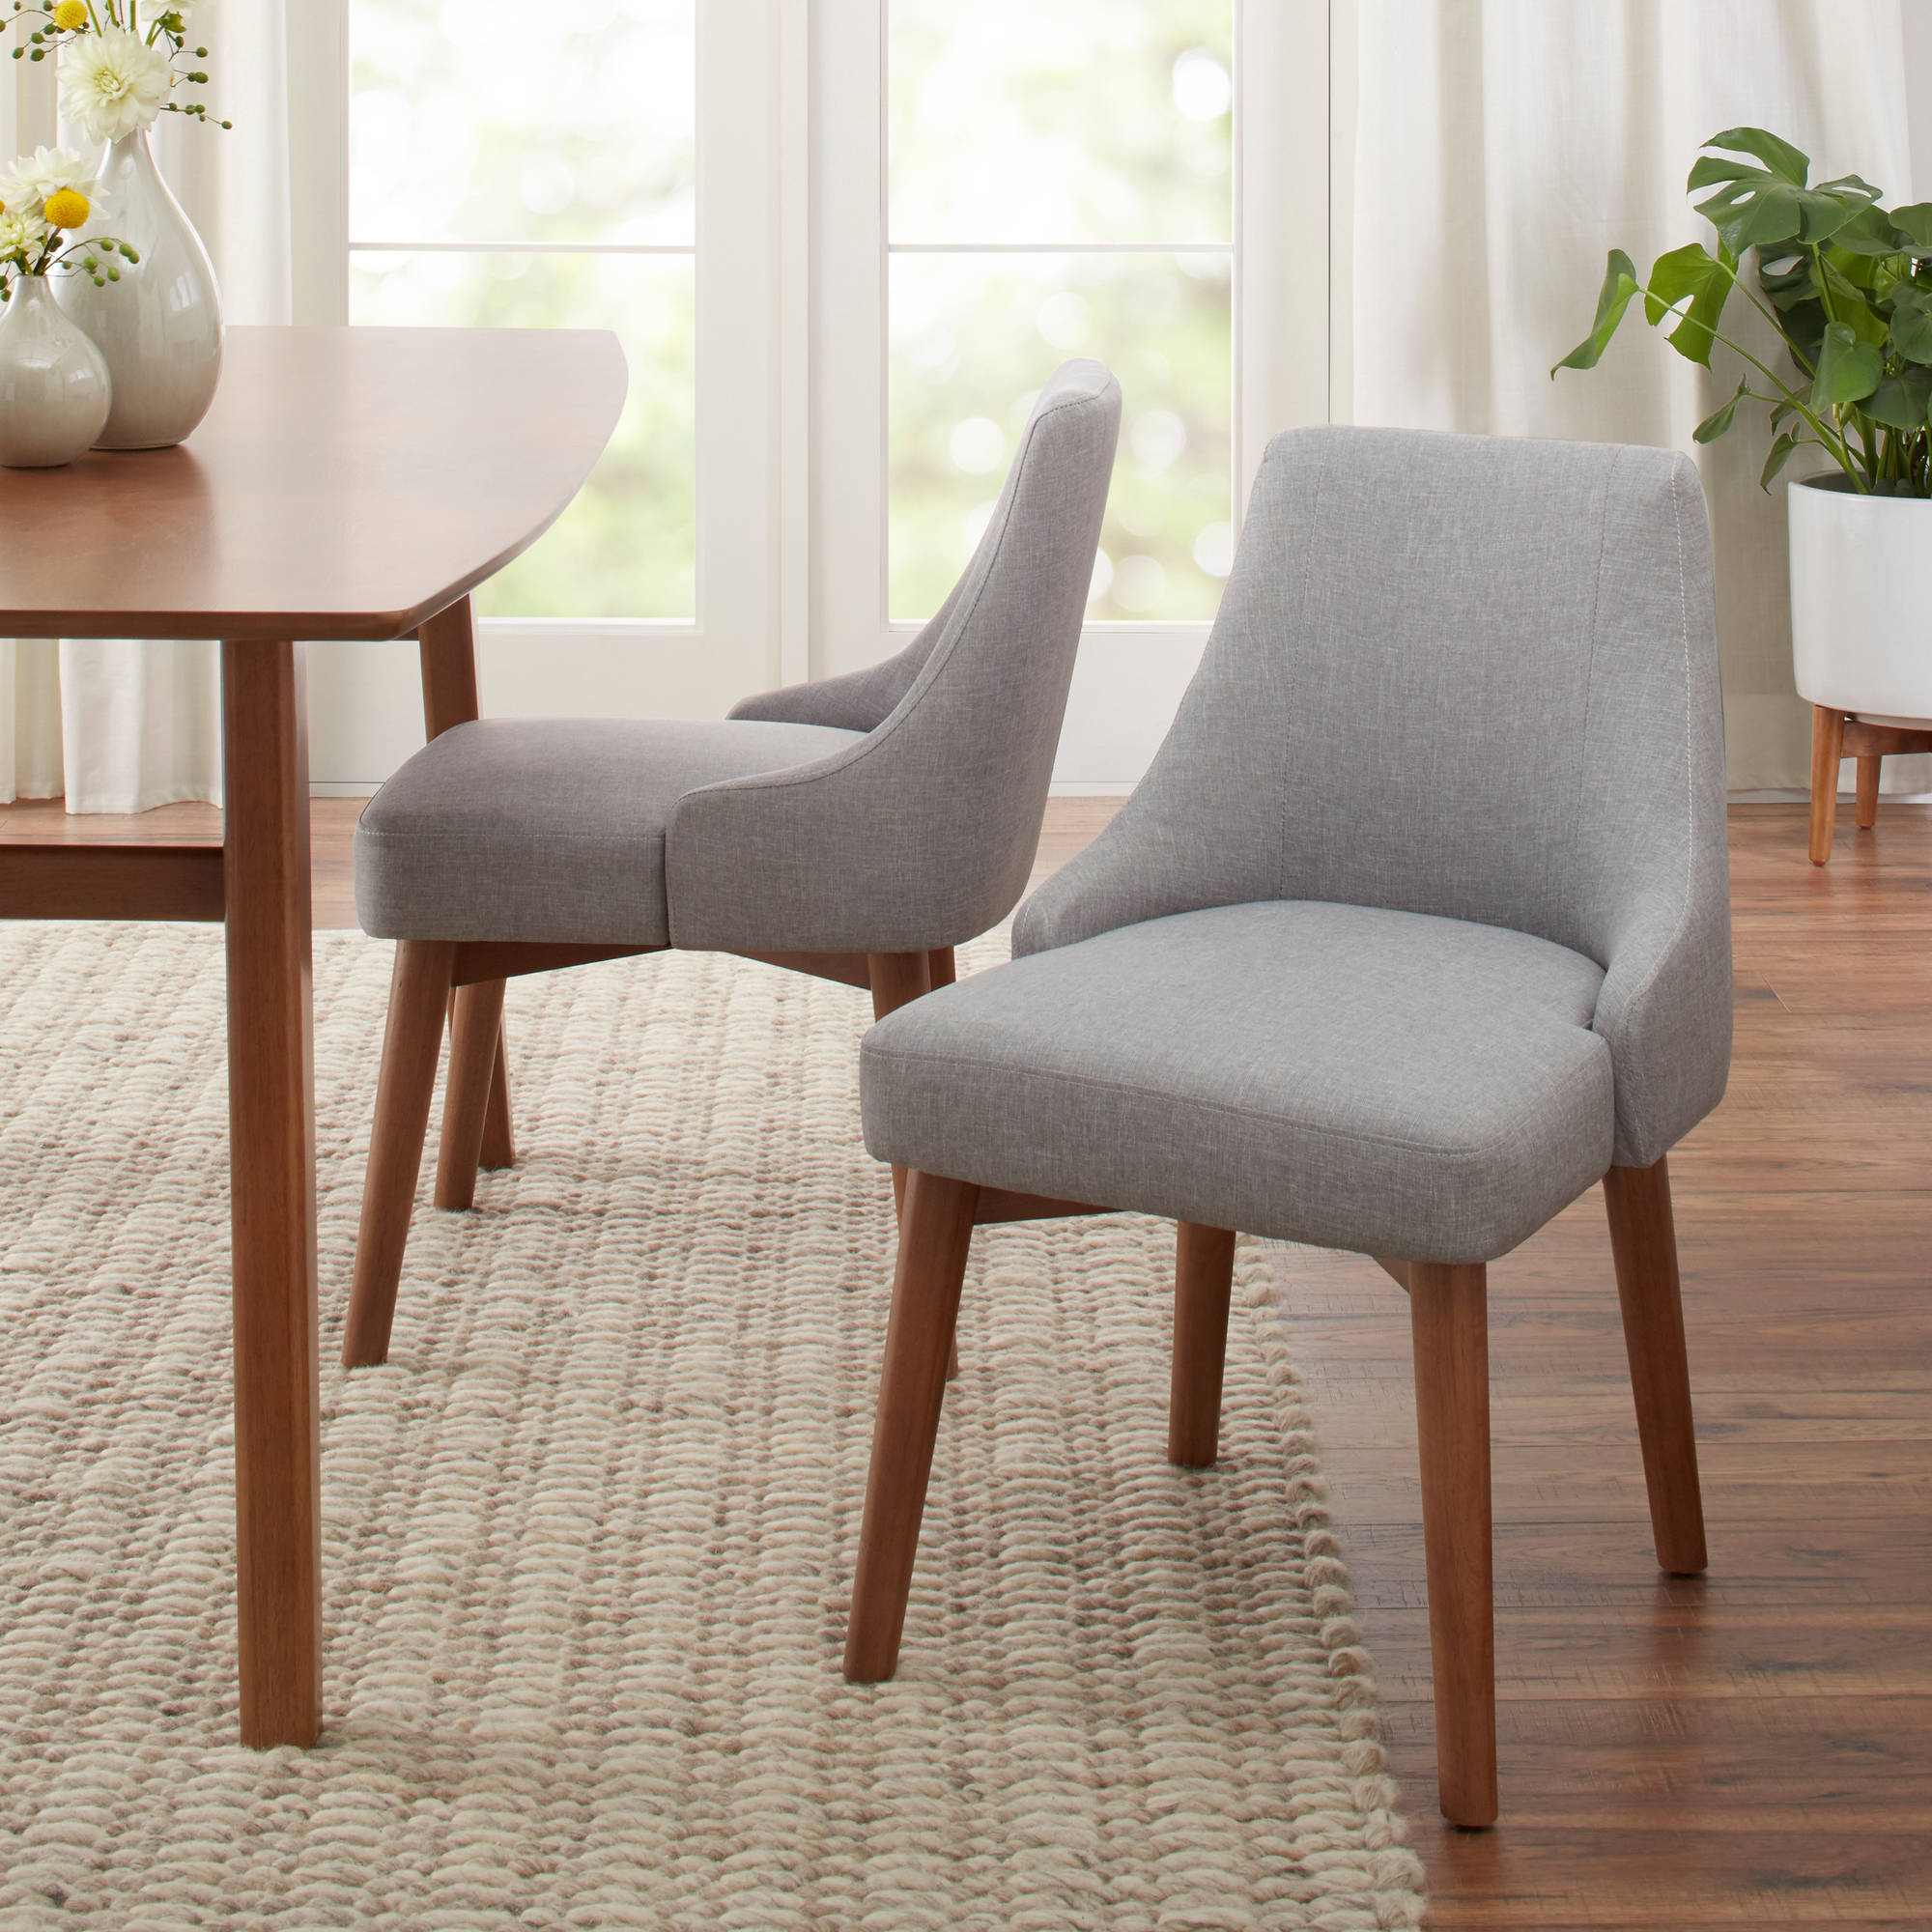 Dining Chairs Modern Dining Room Chairs For Stylish Luxury Living